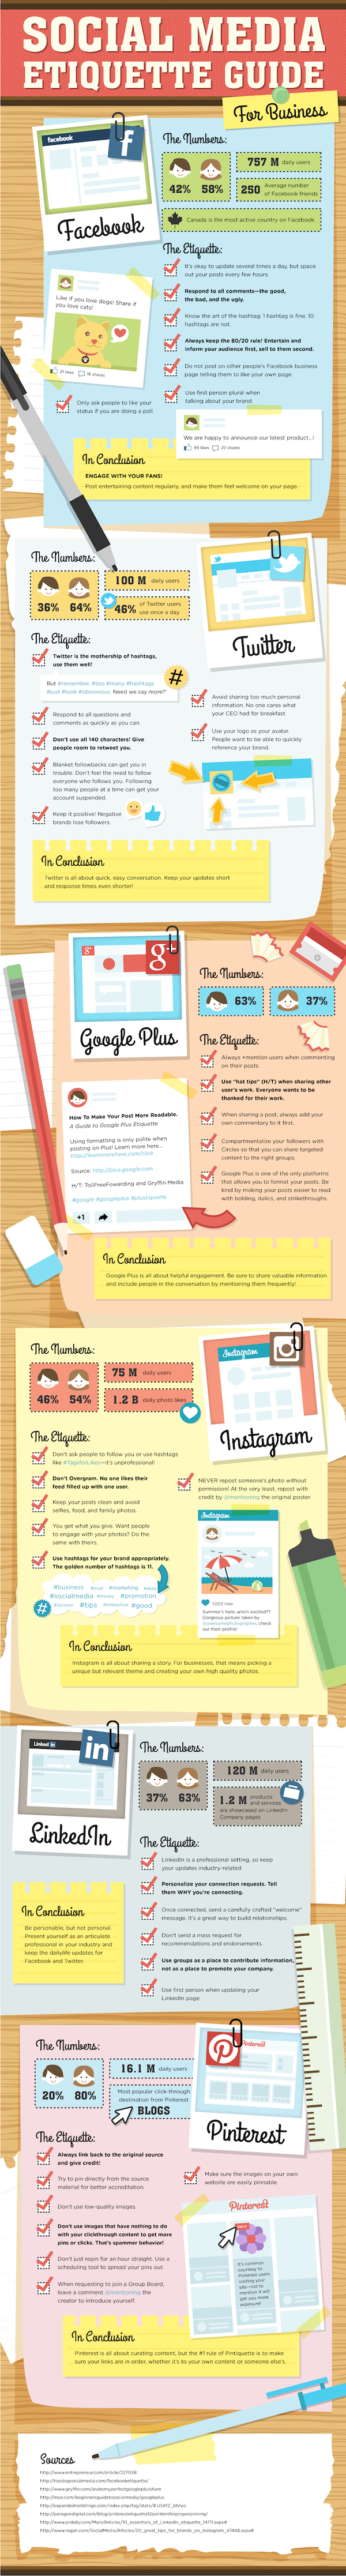 Social Media Etiquette for Businesses